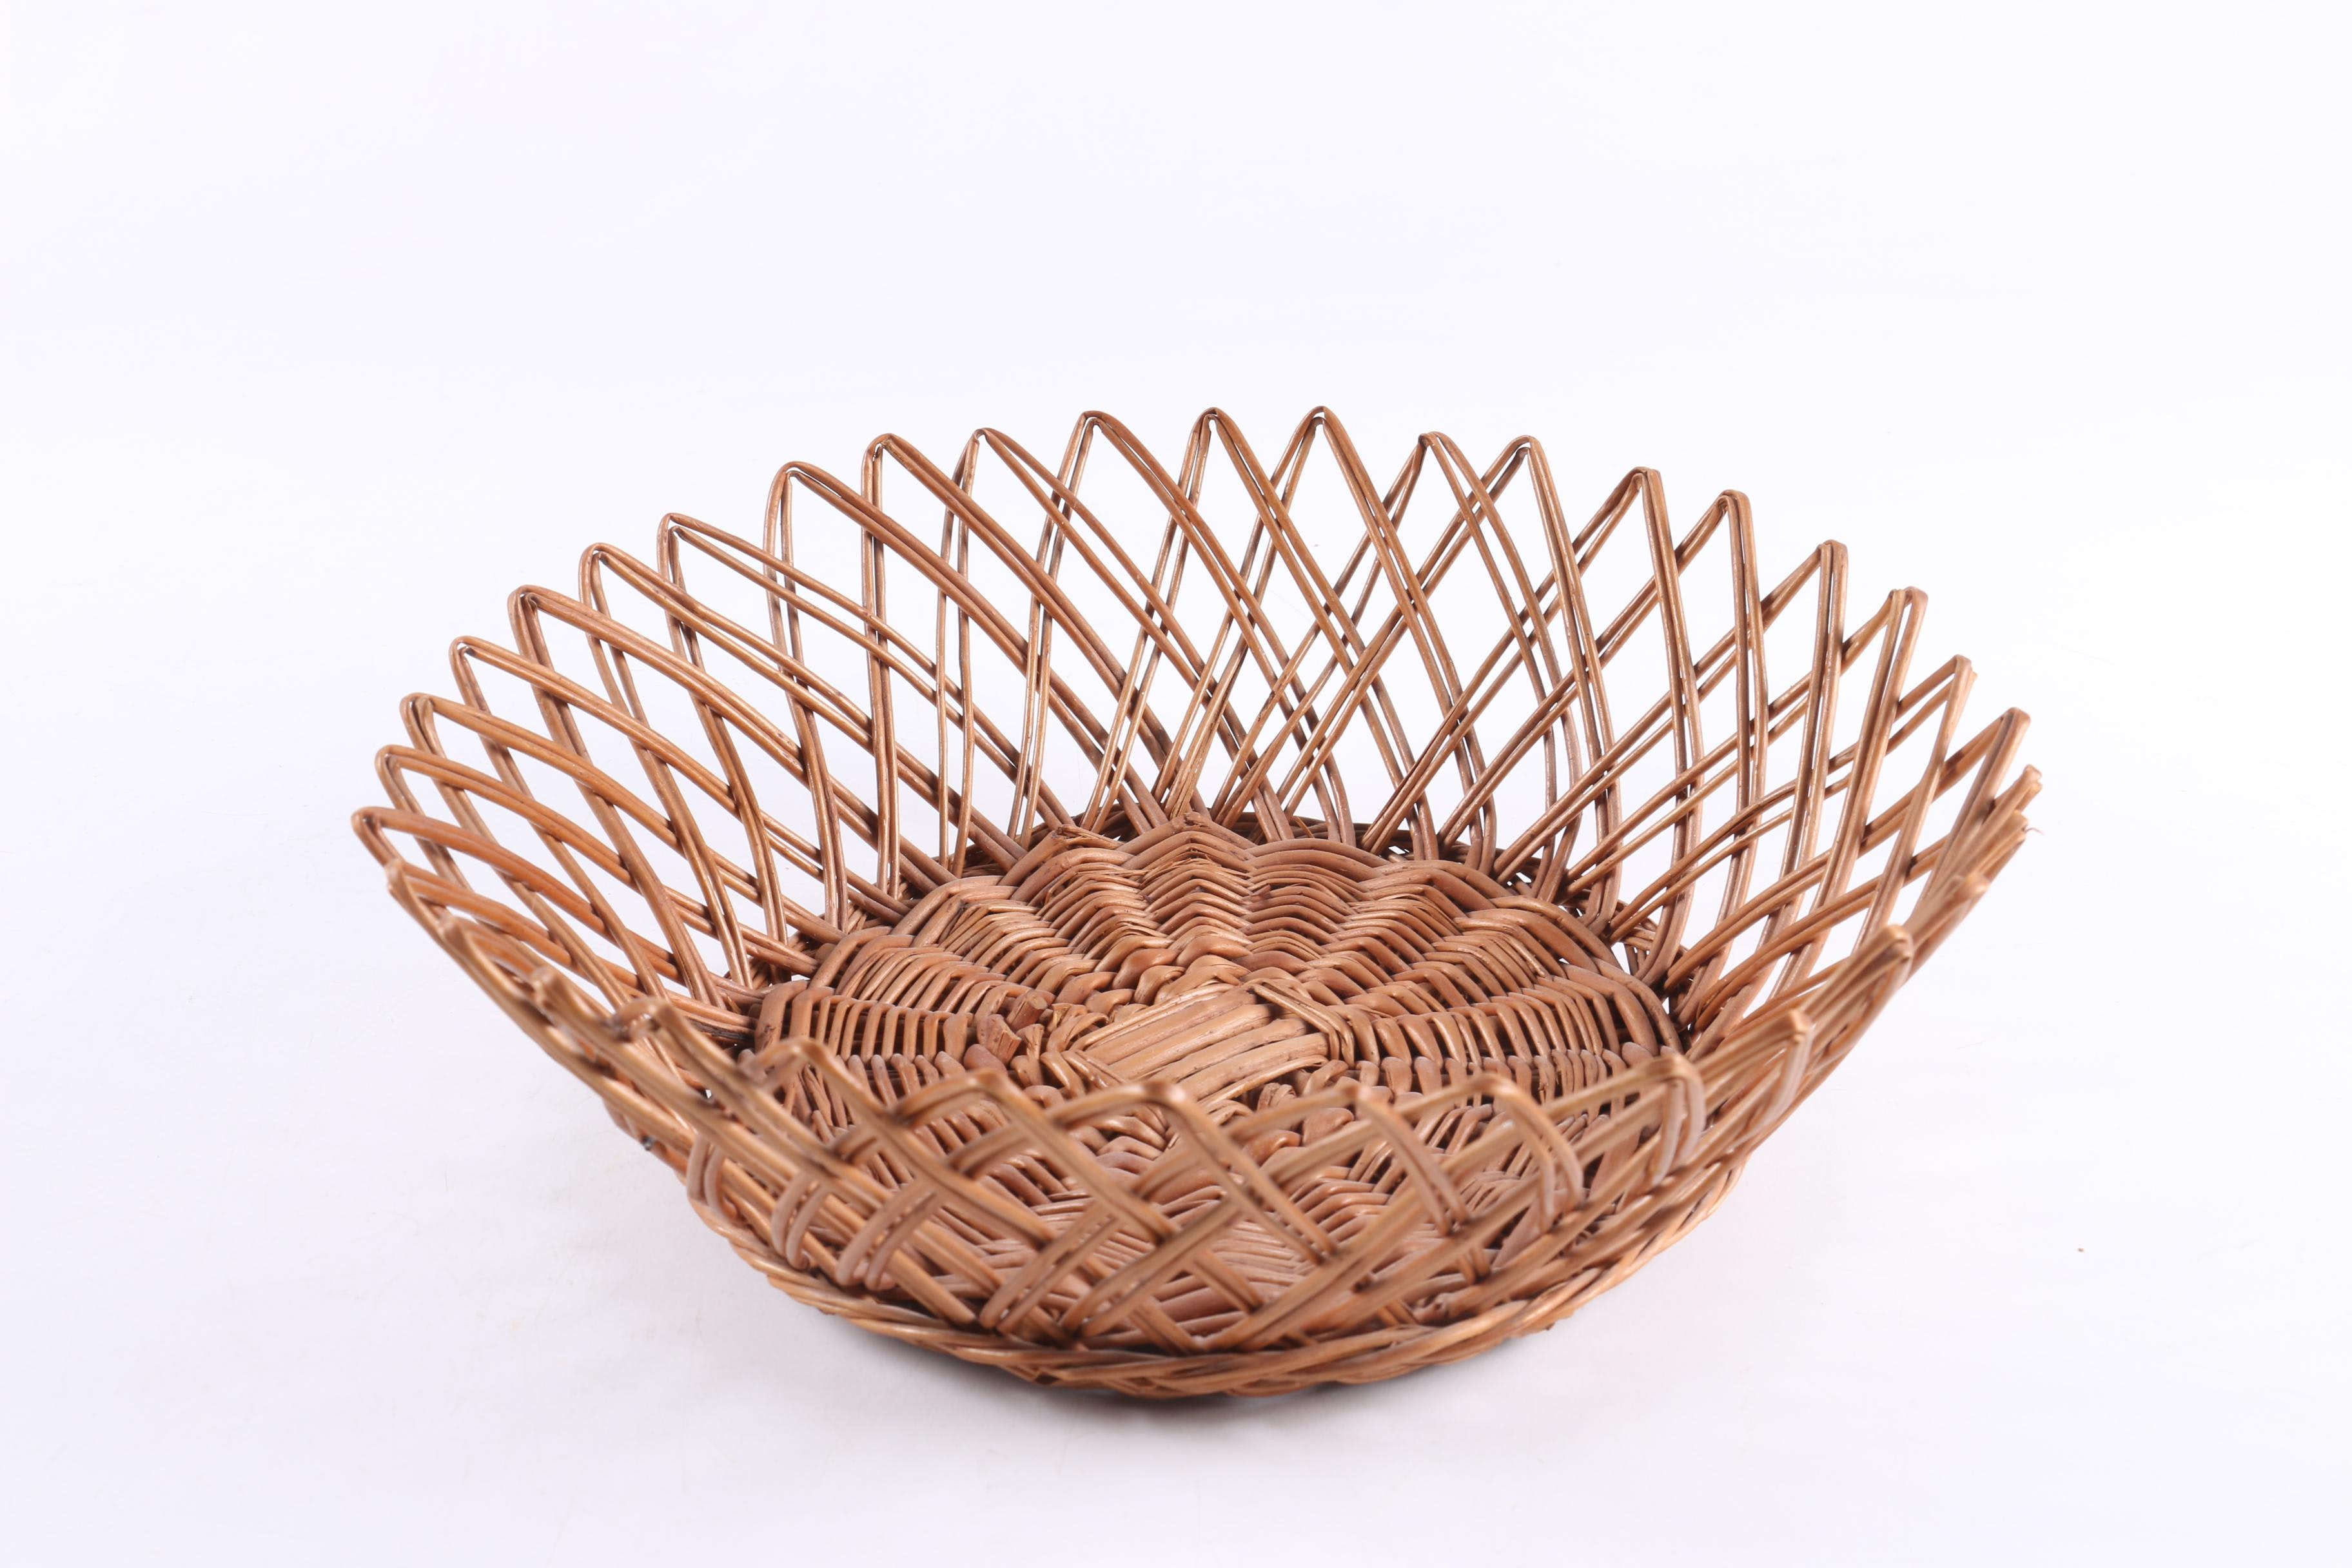 Contemporary Hand Woven Reed Bread Basket With Cane Embellishments